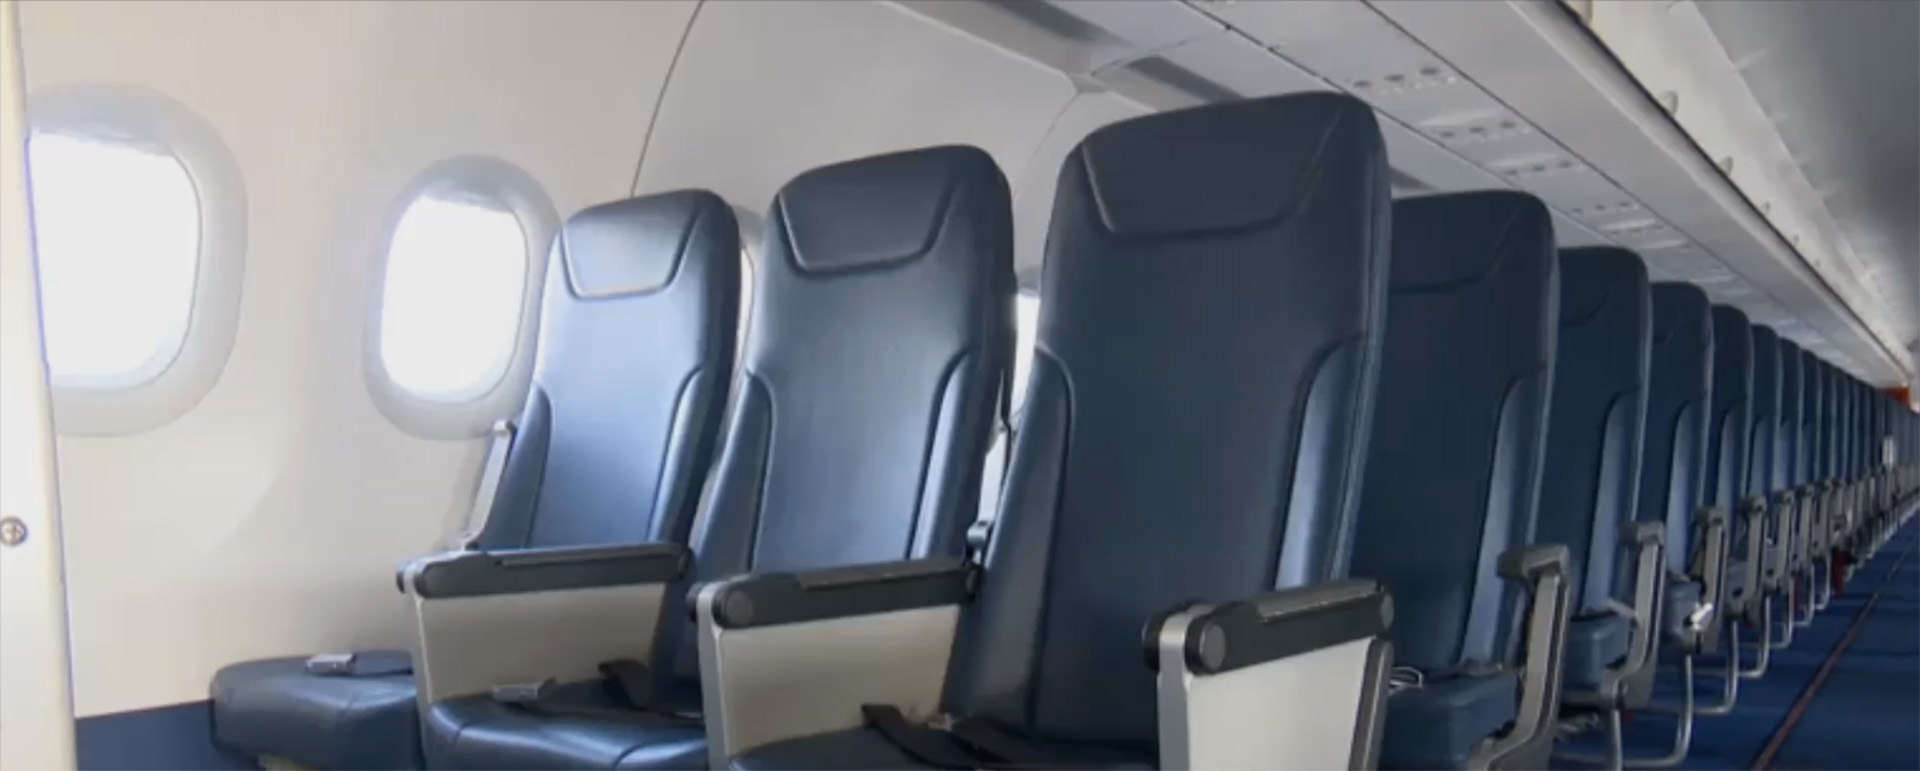 Pitch PF3000 seats fitted to Israir Airlines A320 fleet under 16g (C127b) certification